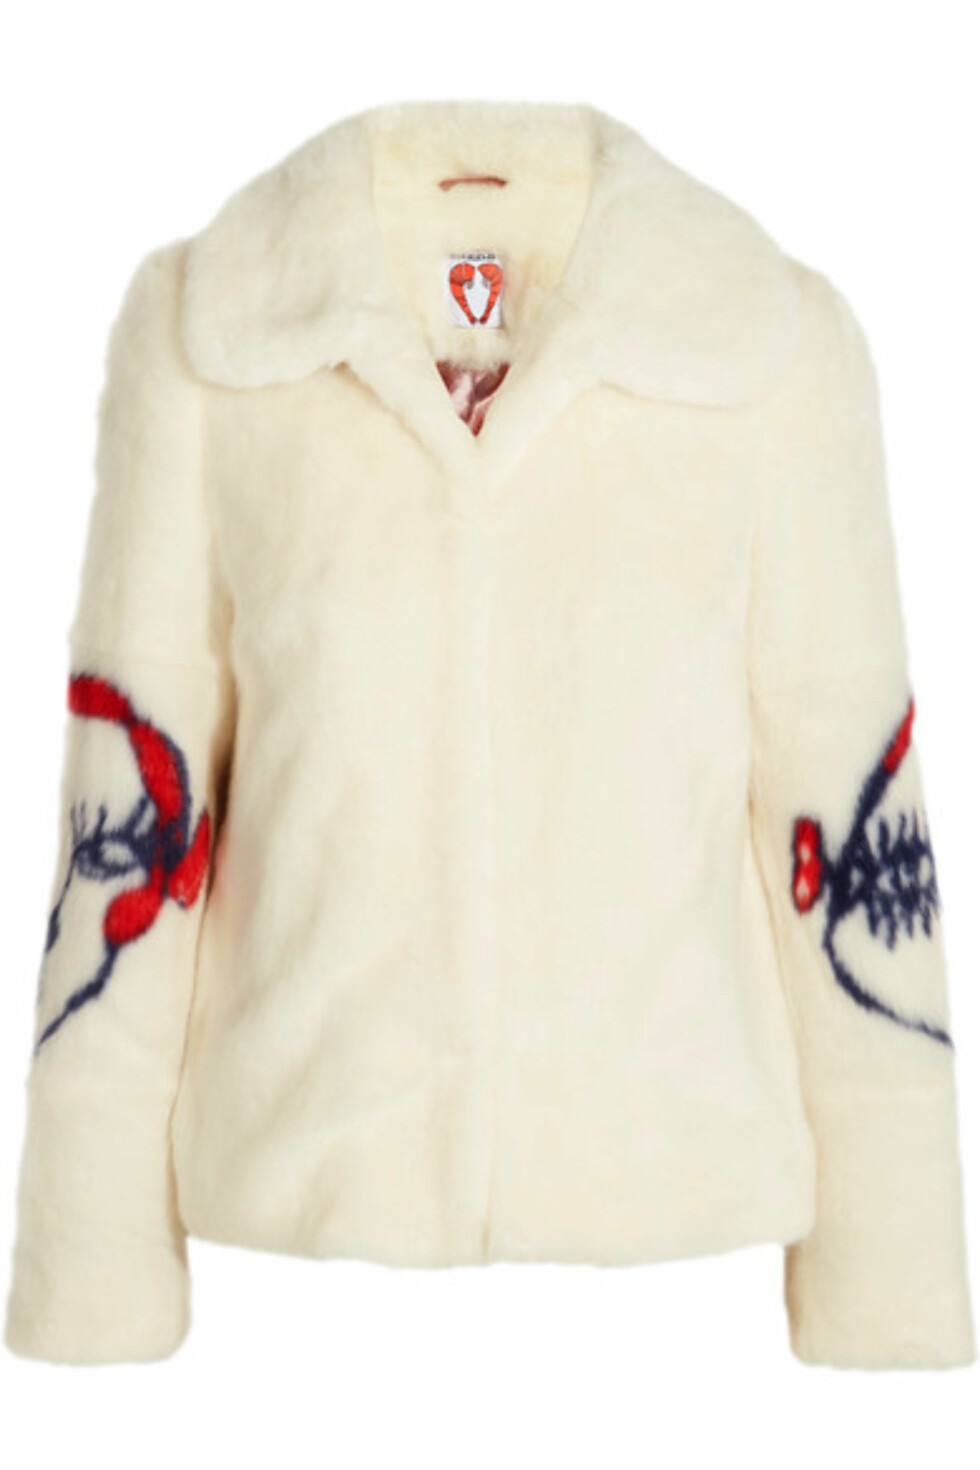 Fuskepels fra Shrimps via Net-a-porter.com | kr 5178 | https://www.net-a-porter.com/no/en/product/760695/Shrimps/junior-intarsia-faux-fur-coat